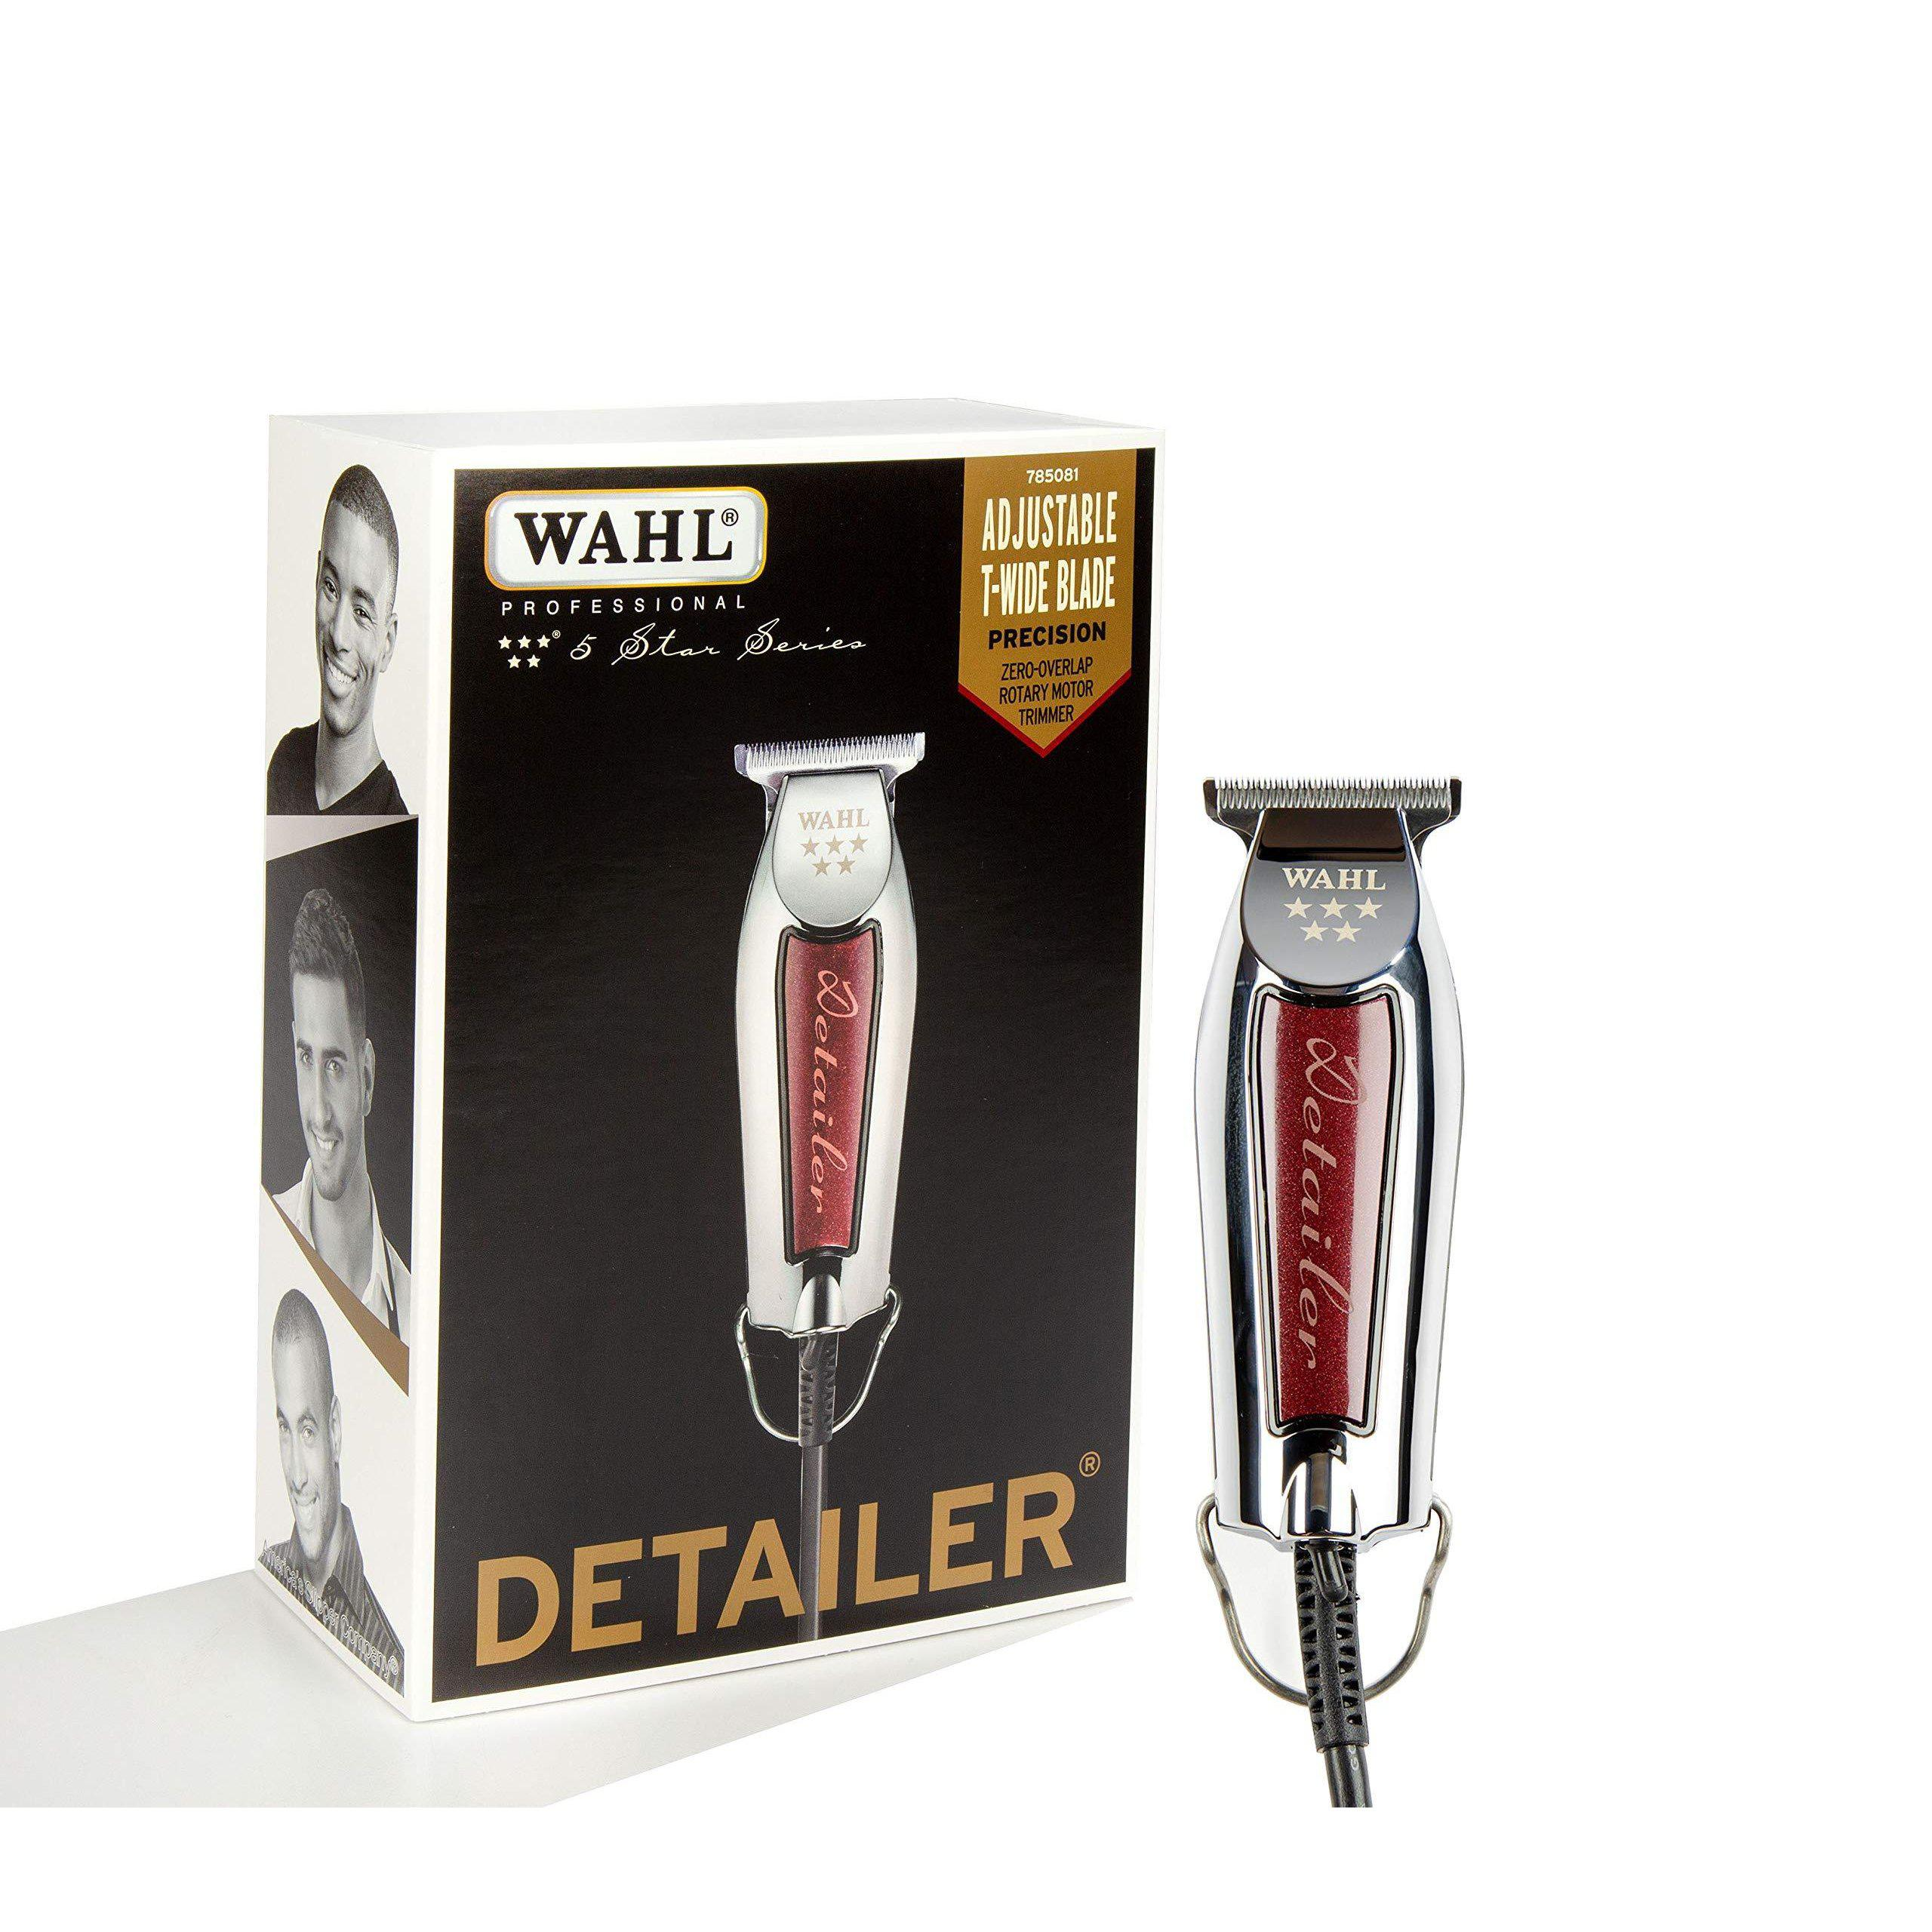 Wahl Professional Series Detailer #8081 Hair Clipper - Wahl Professional - Pazarska